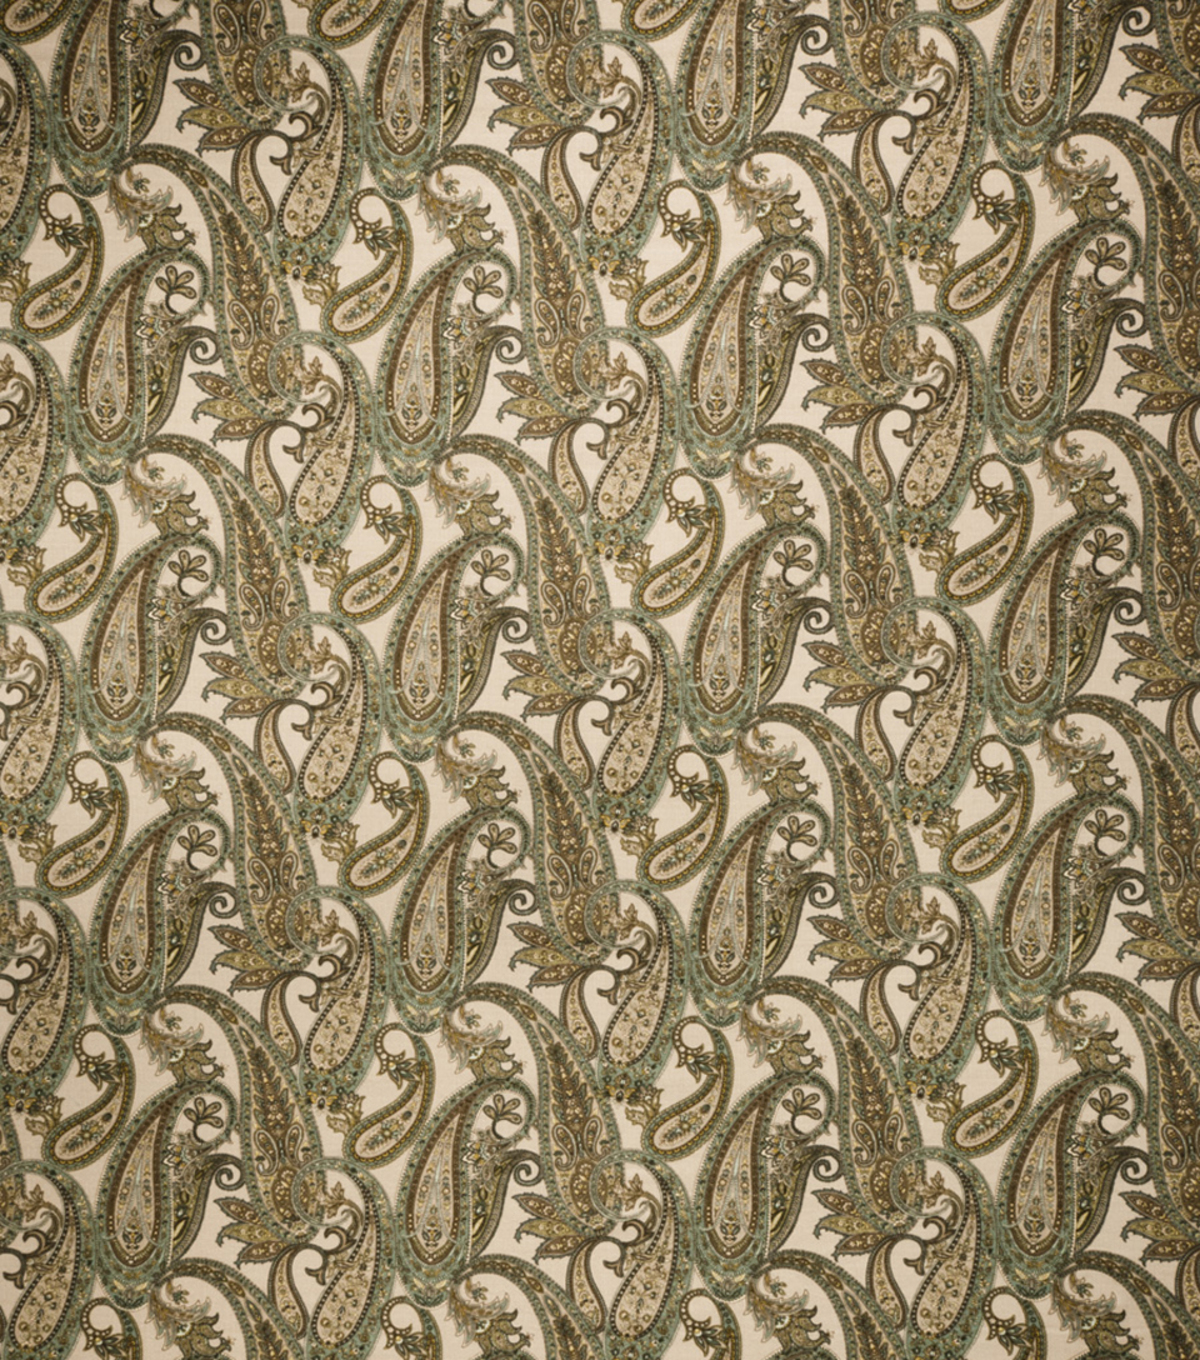 Home Decor 8\u0022x8\u0022 Fabric Swatch-Upholstery Fabric Eaton Square Habit Birch